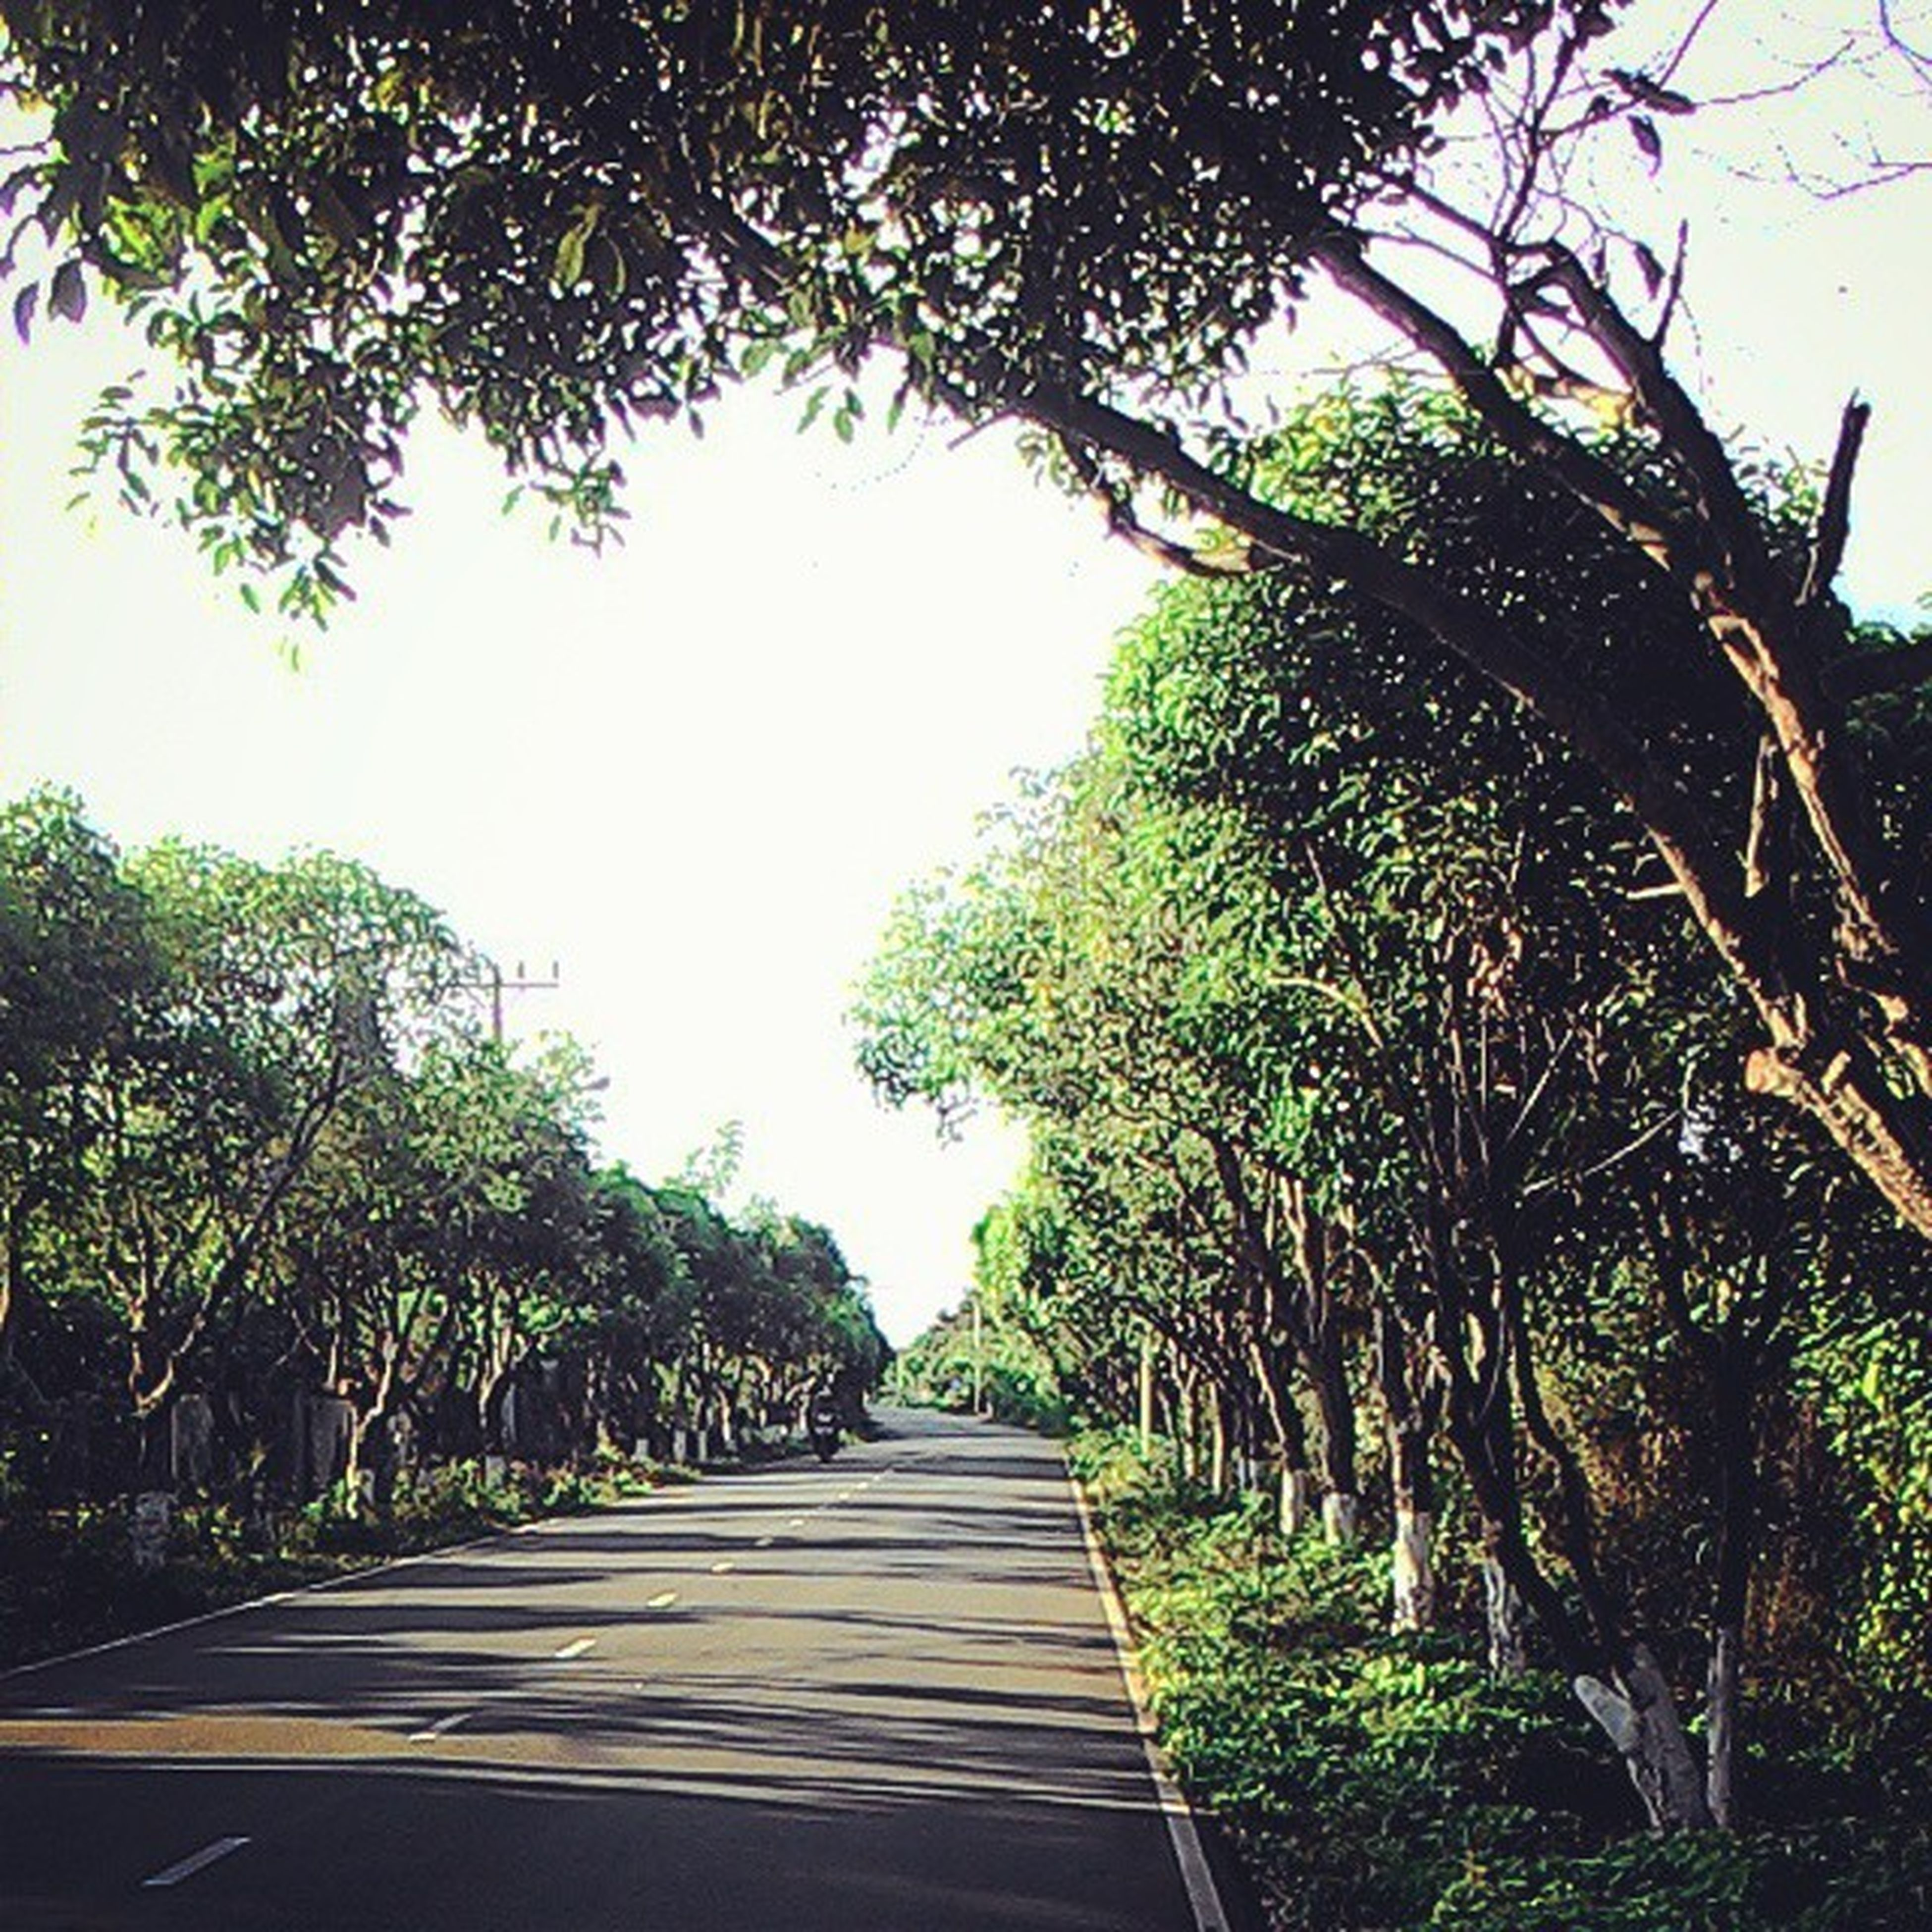 tree, the way forward, clear sky, growth, branch, diminishing perspective, sunlight, low angle view, green color, nature, tranquility, footpath, railing, day, sky, walkway, outdoors, vanishing point, no people, tree trunk